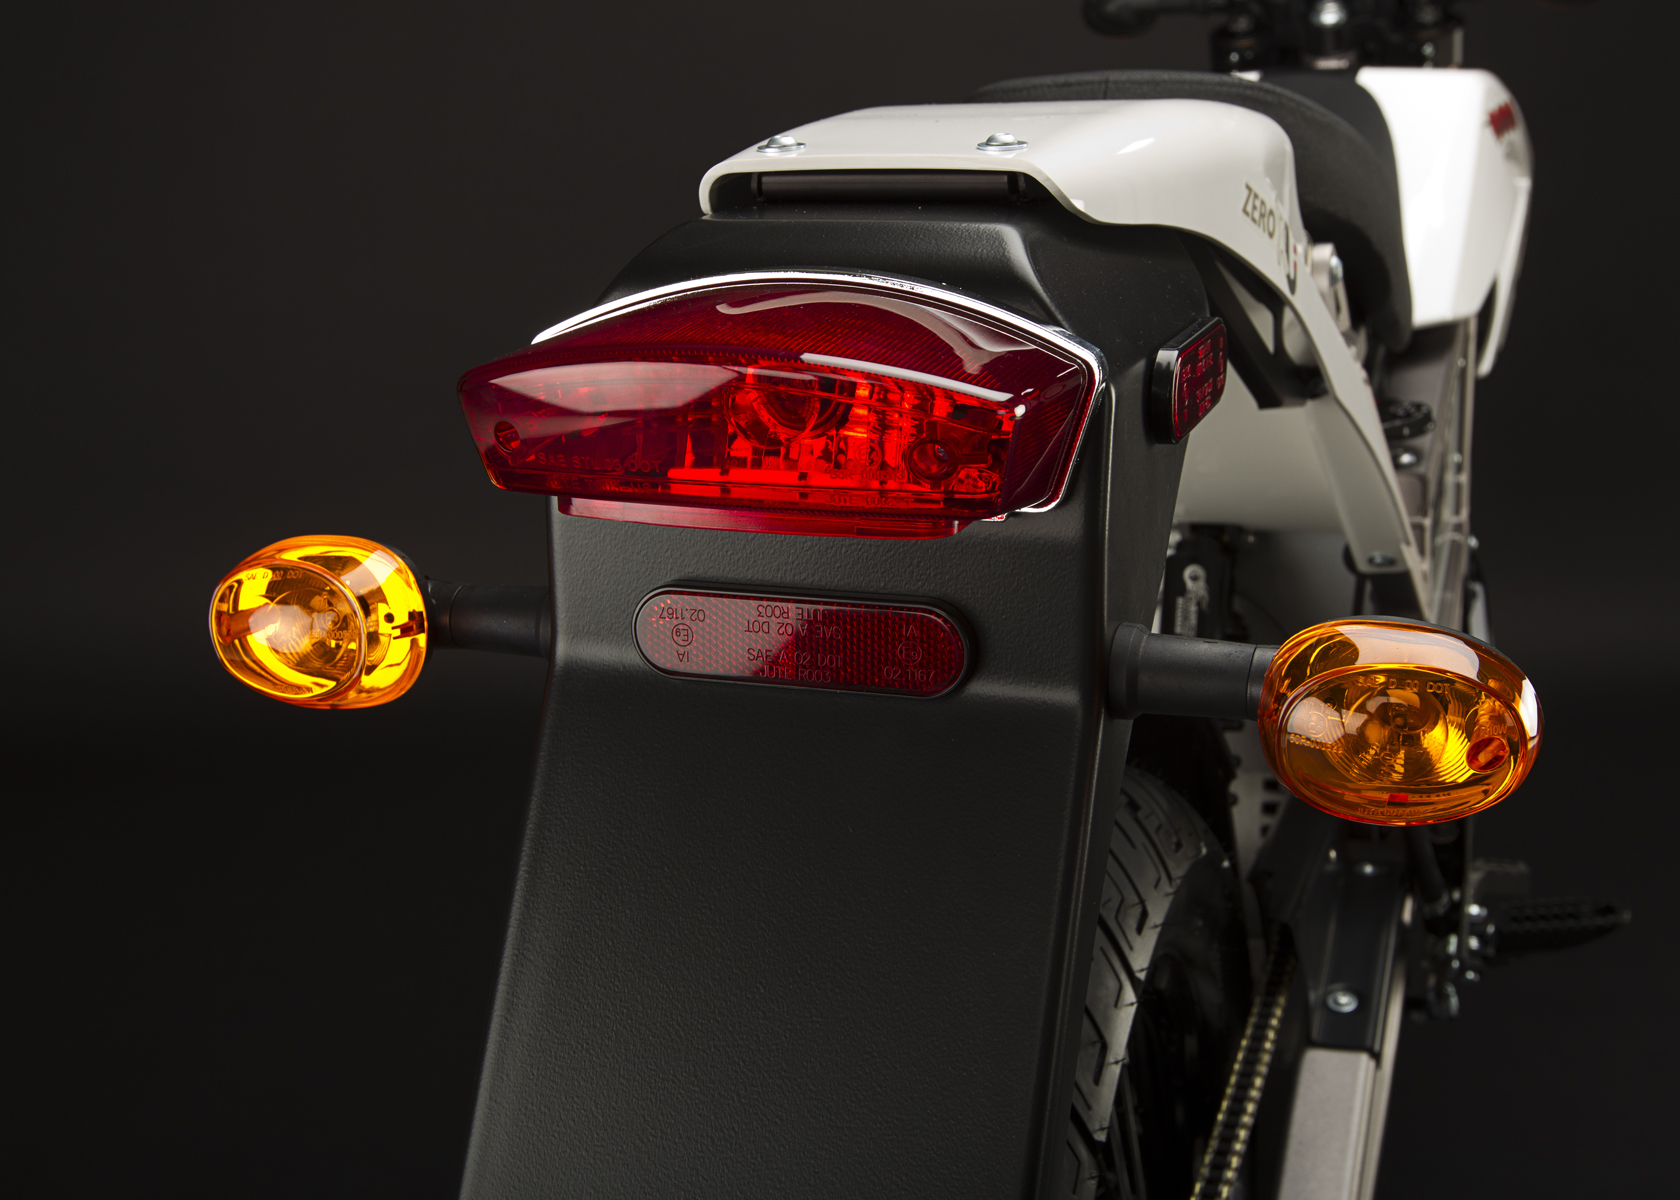 '.2011 Zero XU Electric Motorcycle: Tail Lights.'